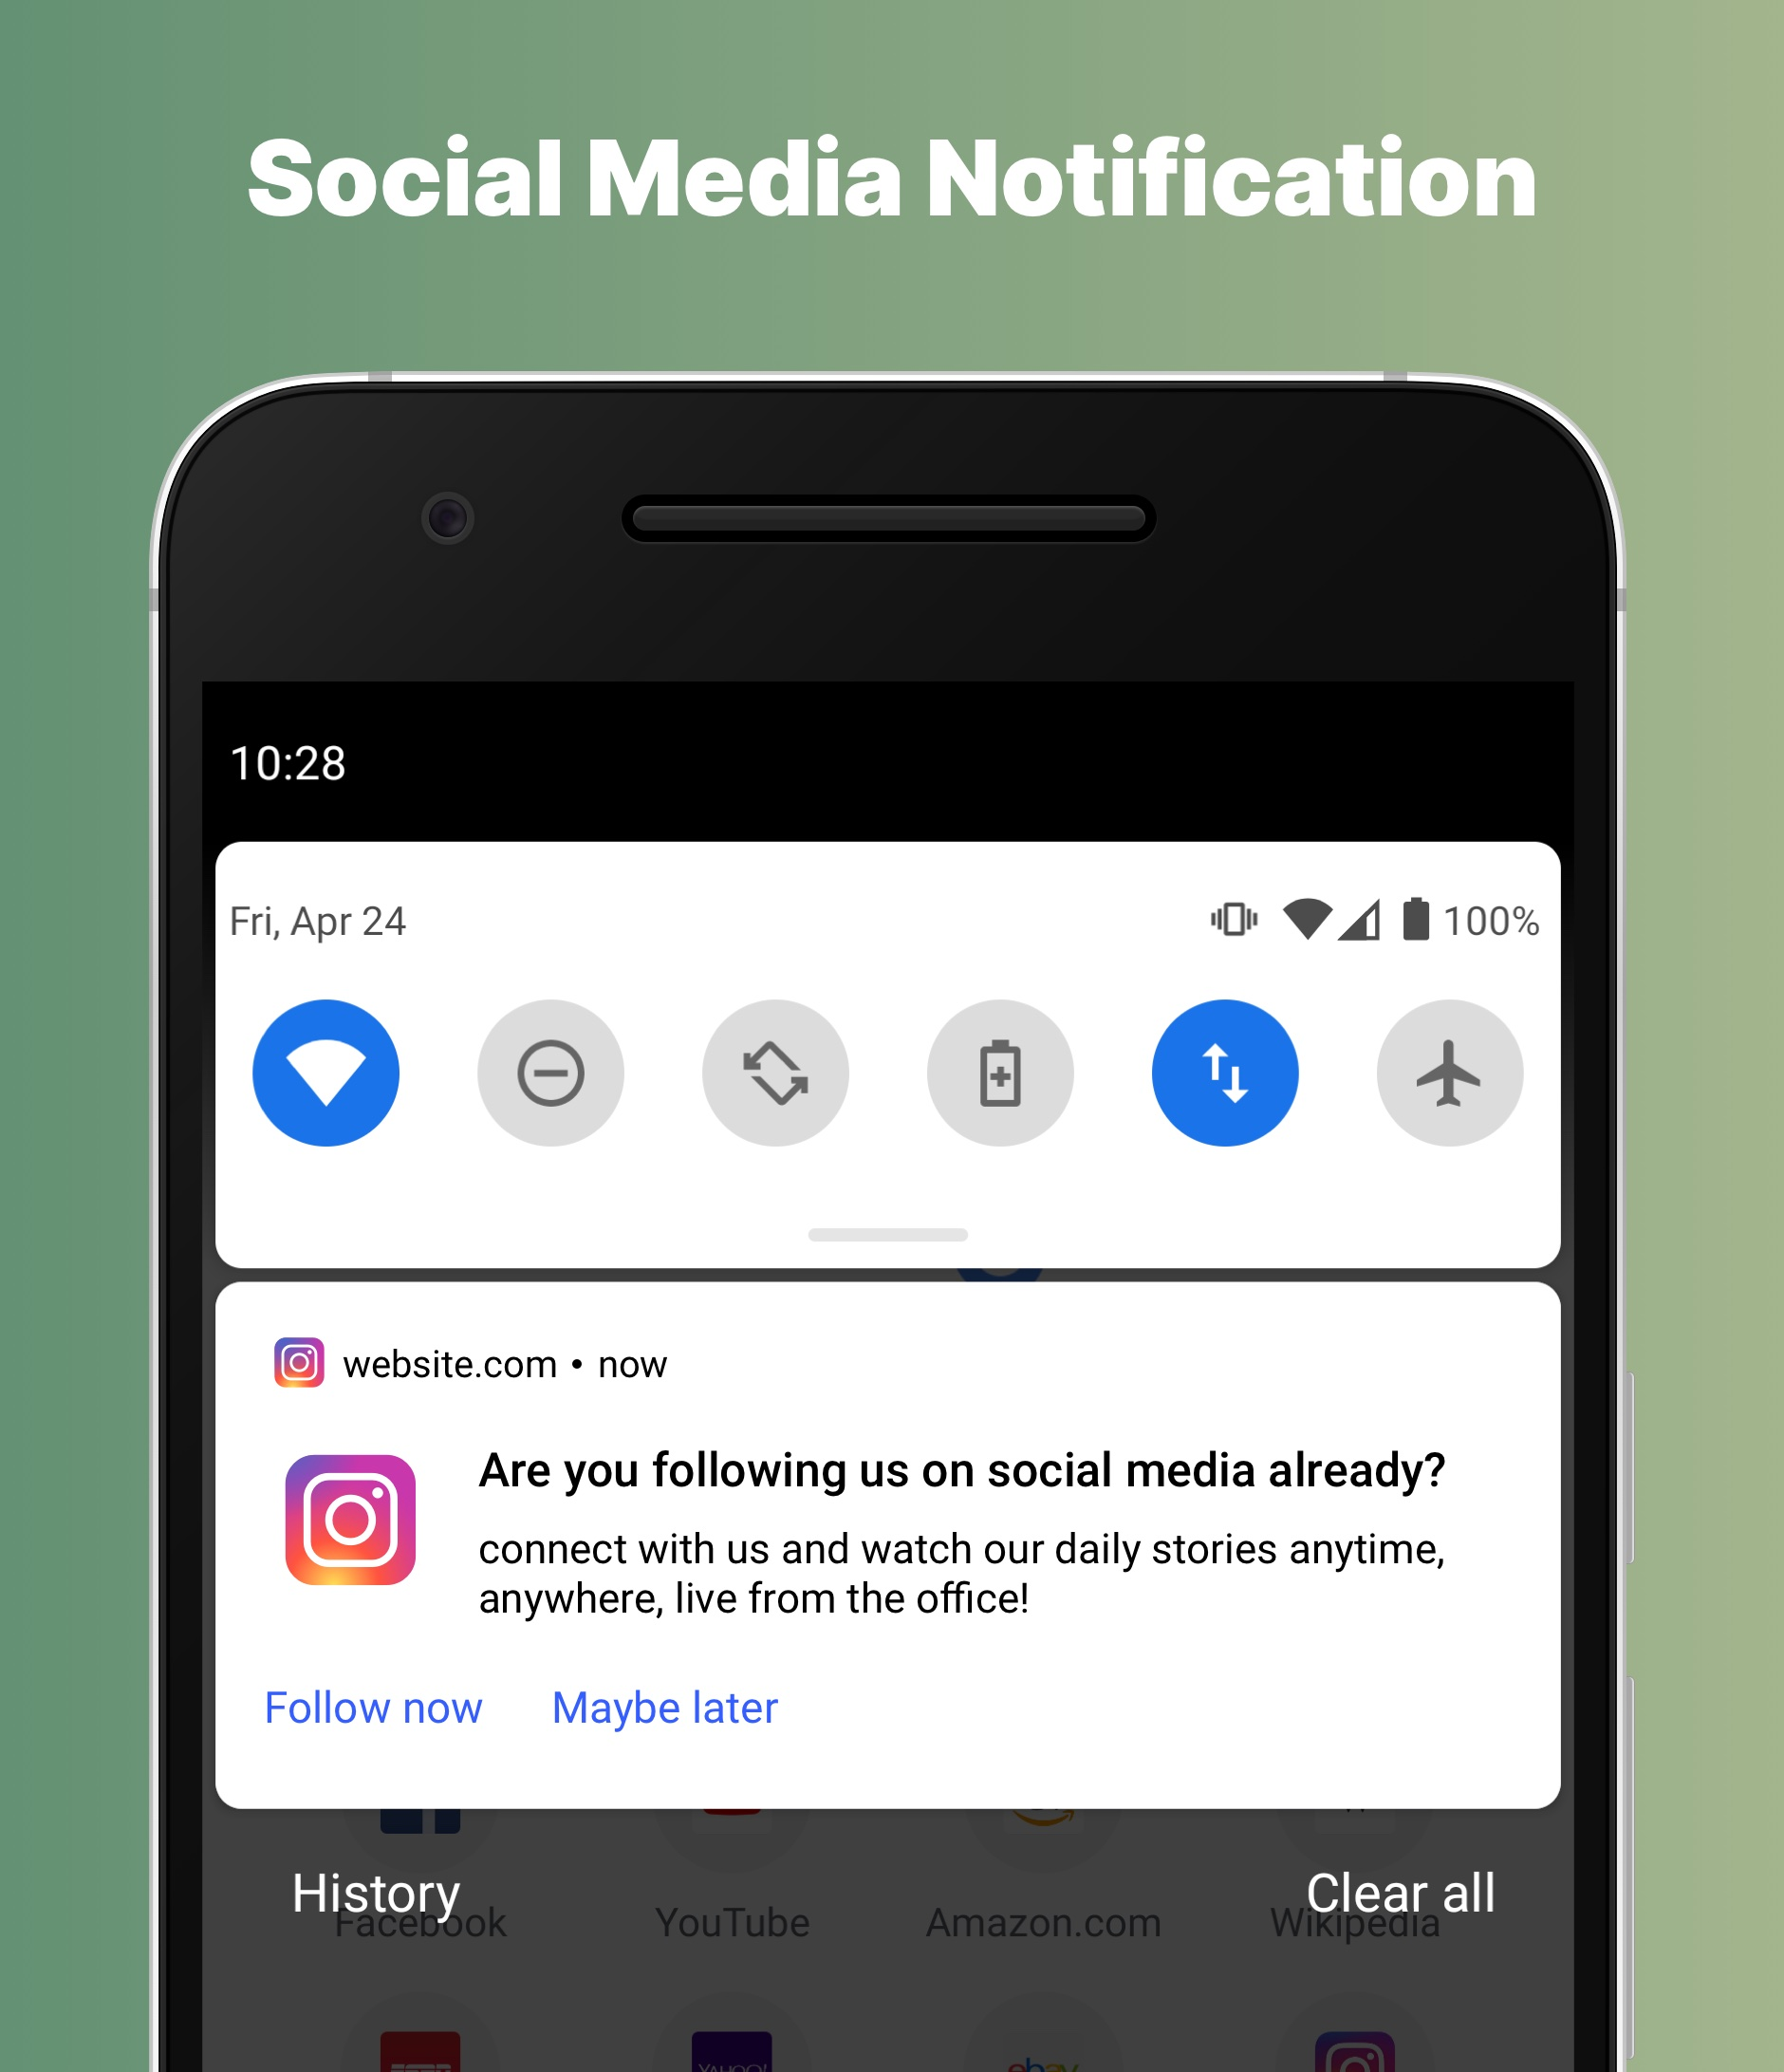 Chrome social media web push notification preview on mobile